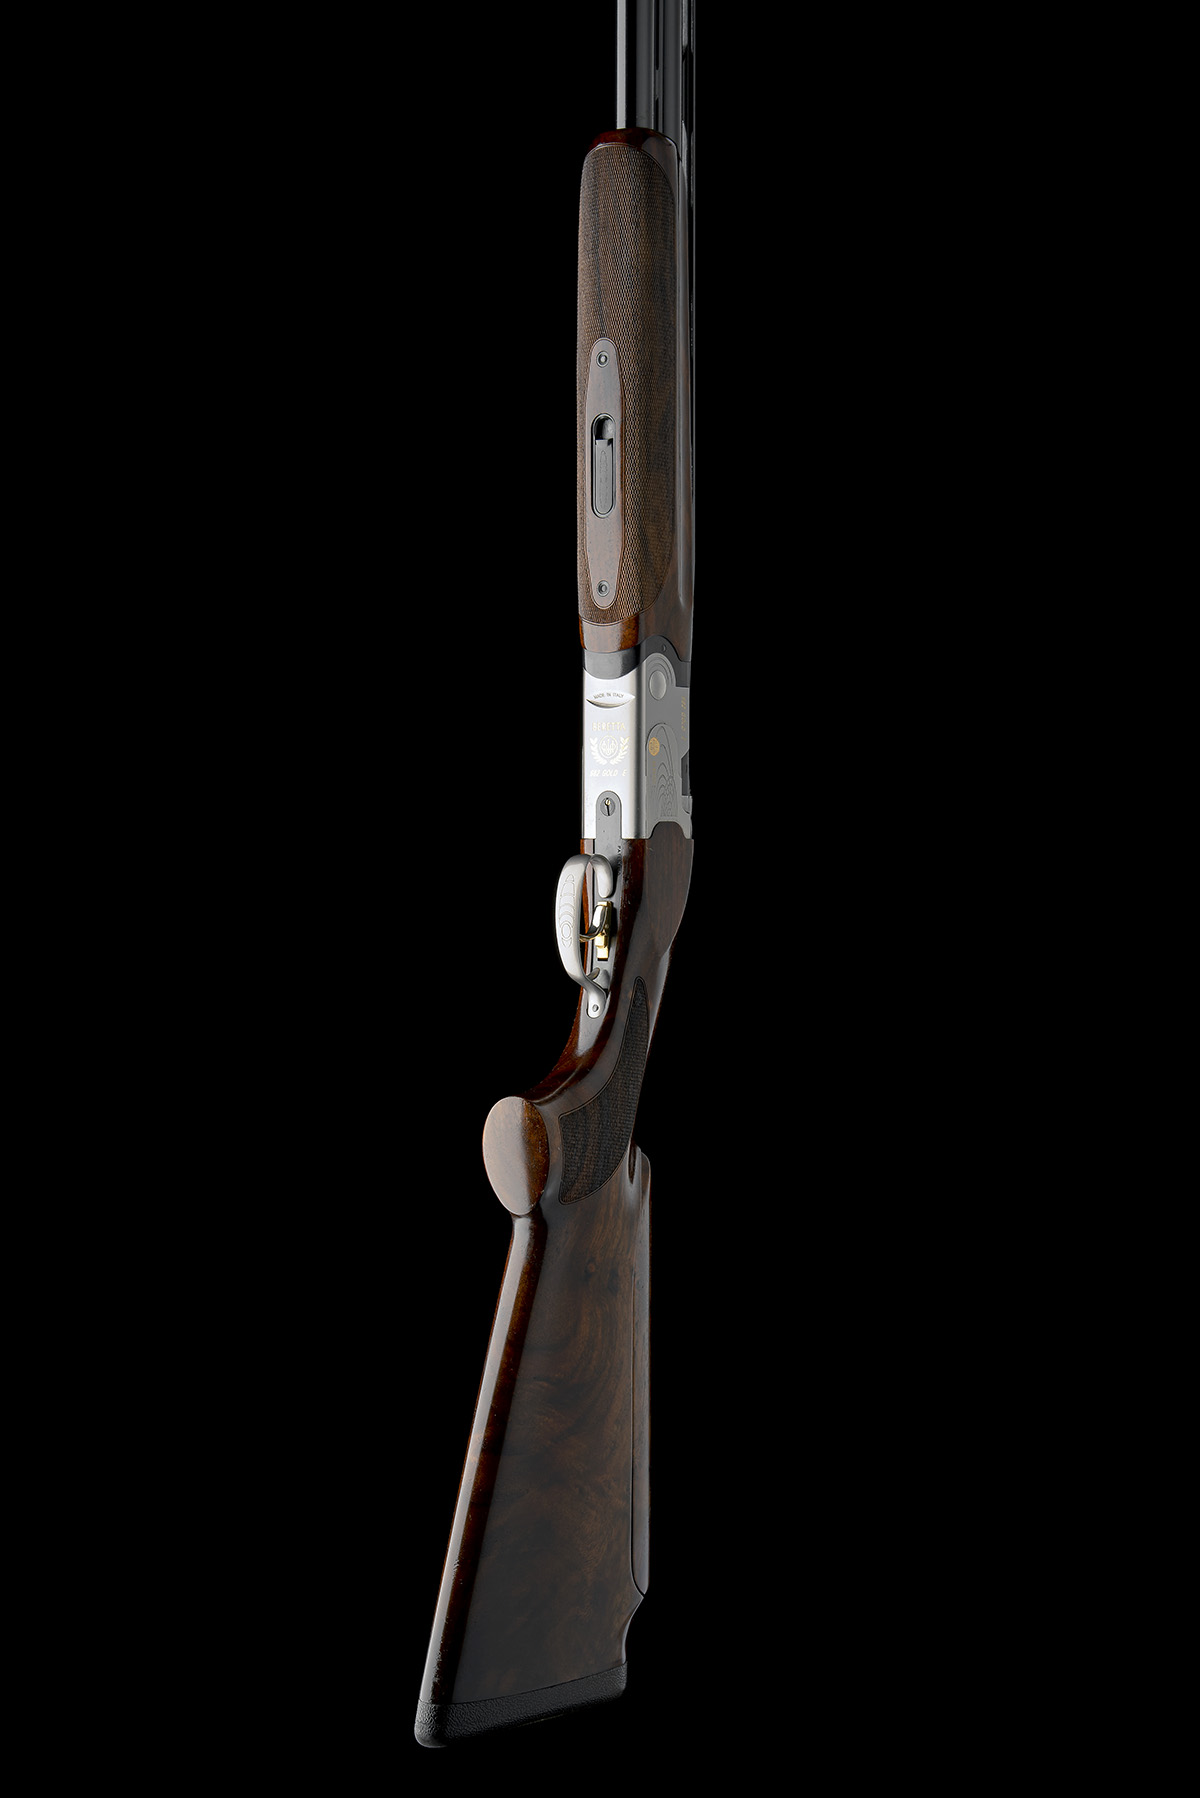 P. BERETTA A 12-BORE (3IN.) '682 GOLD E TRAP' SINGLE-TRIGGER OVER AND UNDER EJECTOR, serial no. - Image 8 of 8